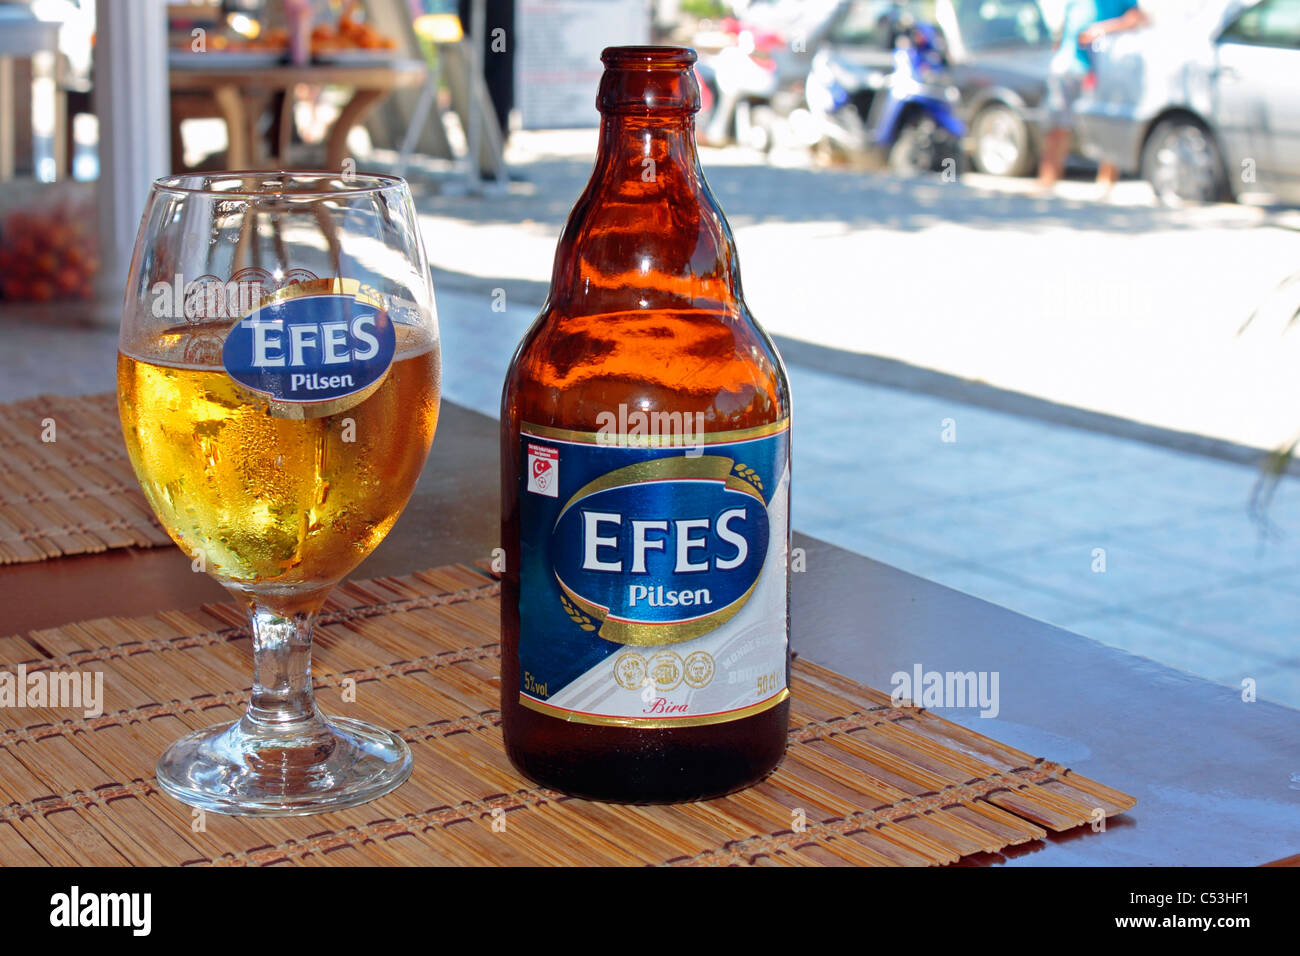 Efes Pilsen Beer Bottle and Glass on restaurant Table in Side, Turkey Stock Photo